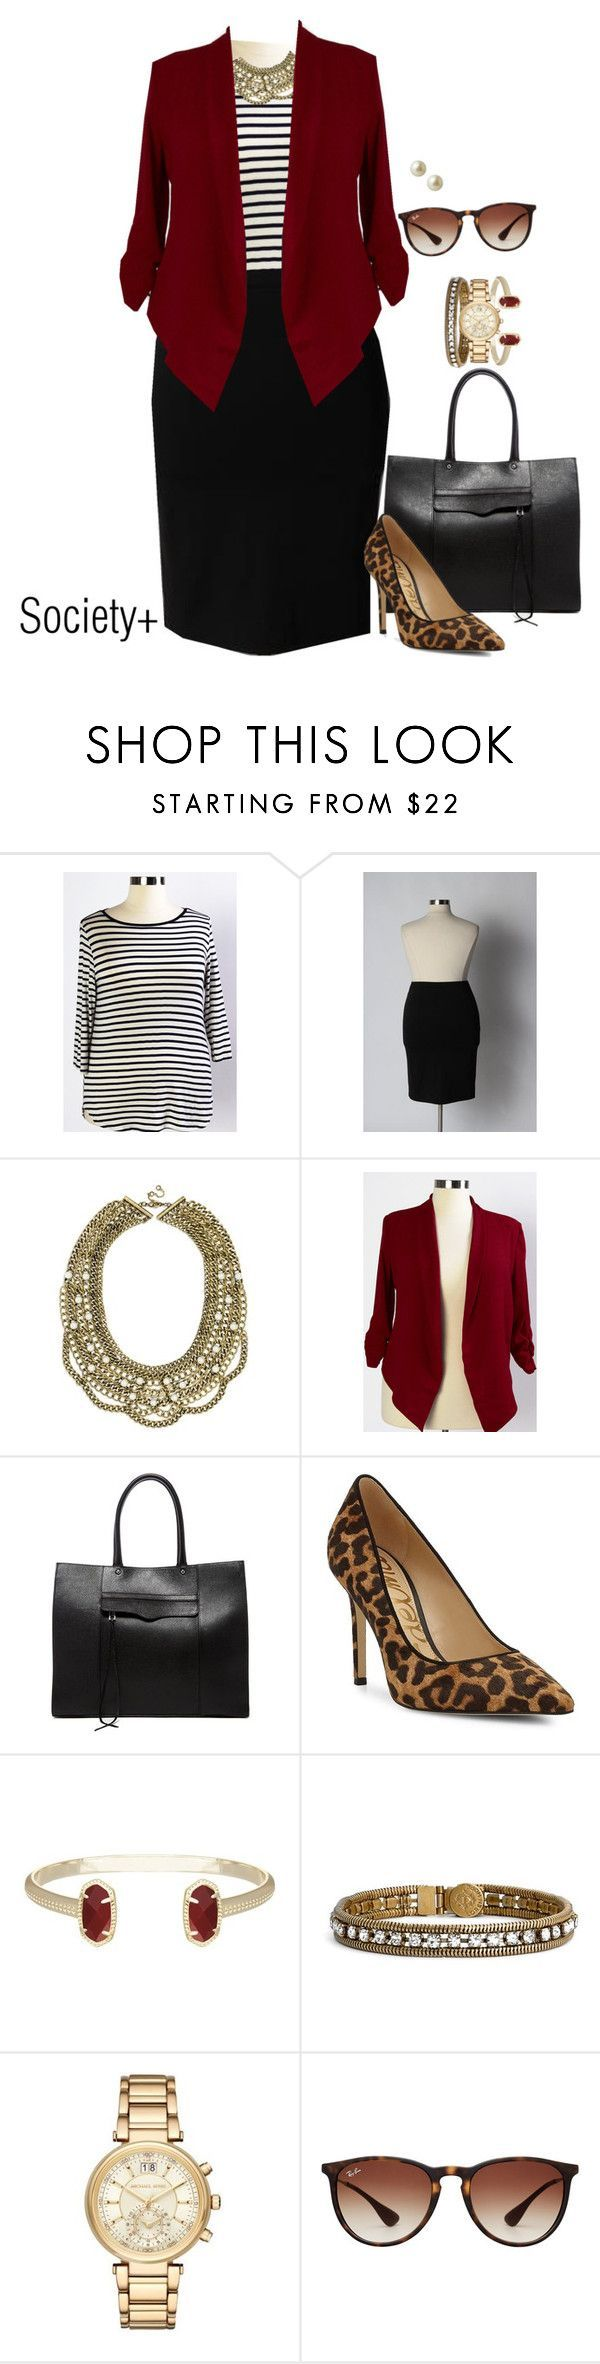 "** Stylish ""Plus Measurement Work Blazer - Society+"" by iamsocietyplus on Polyvore featu...  Explore our amazing collection of plus size  suits at http://wholesaleplussize.clothing/"